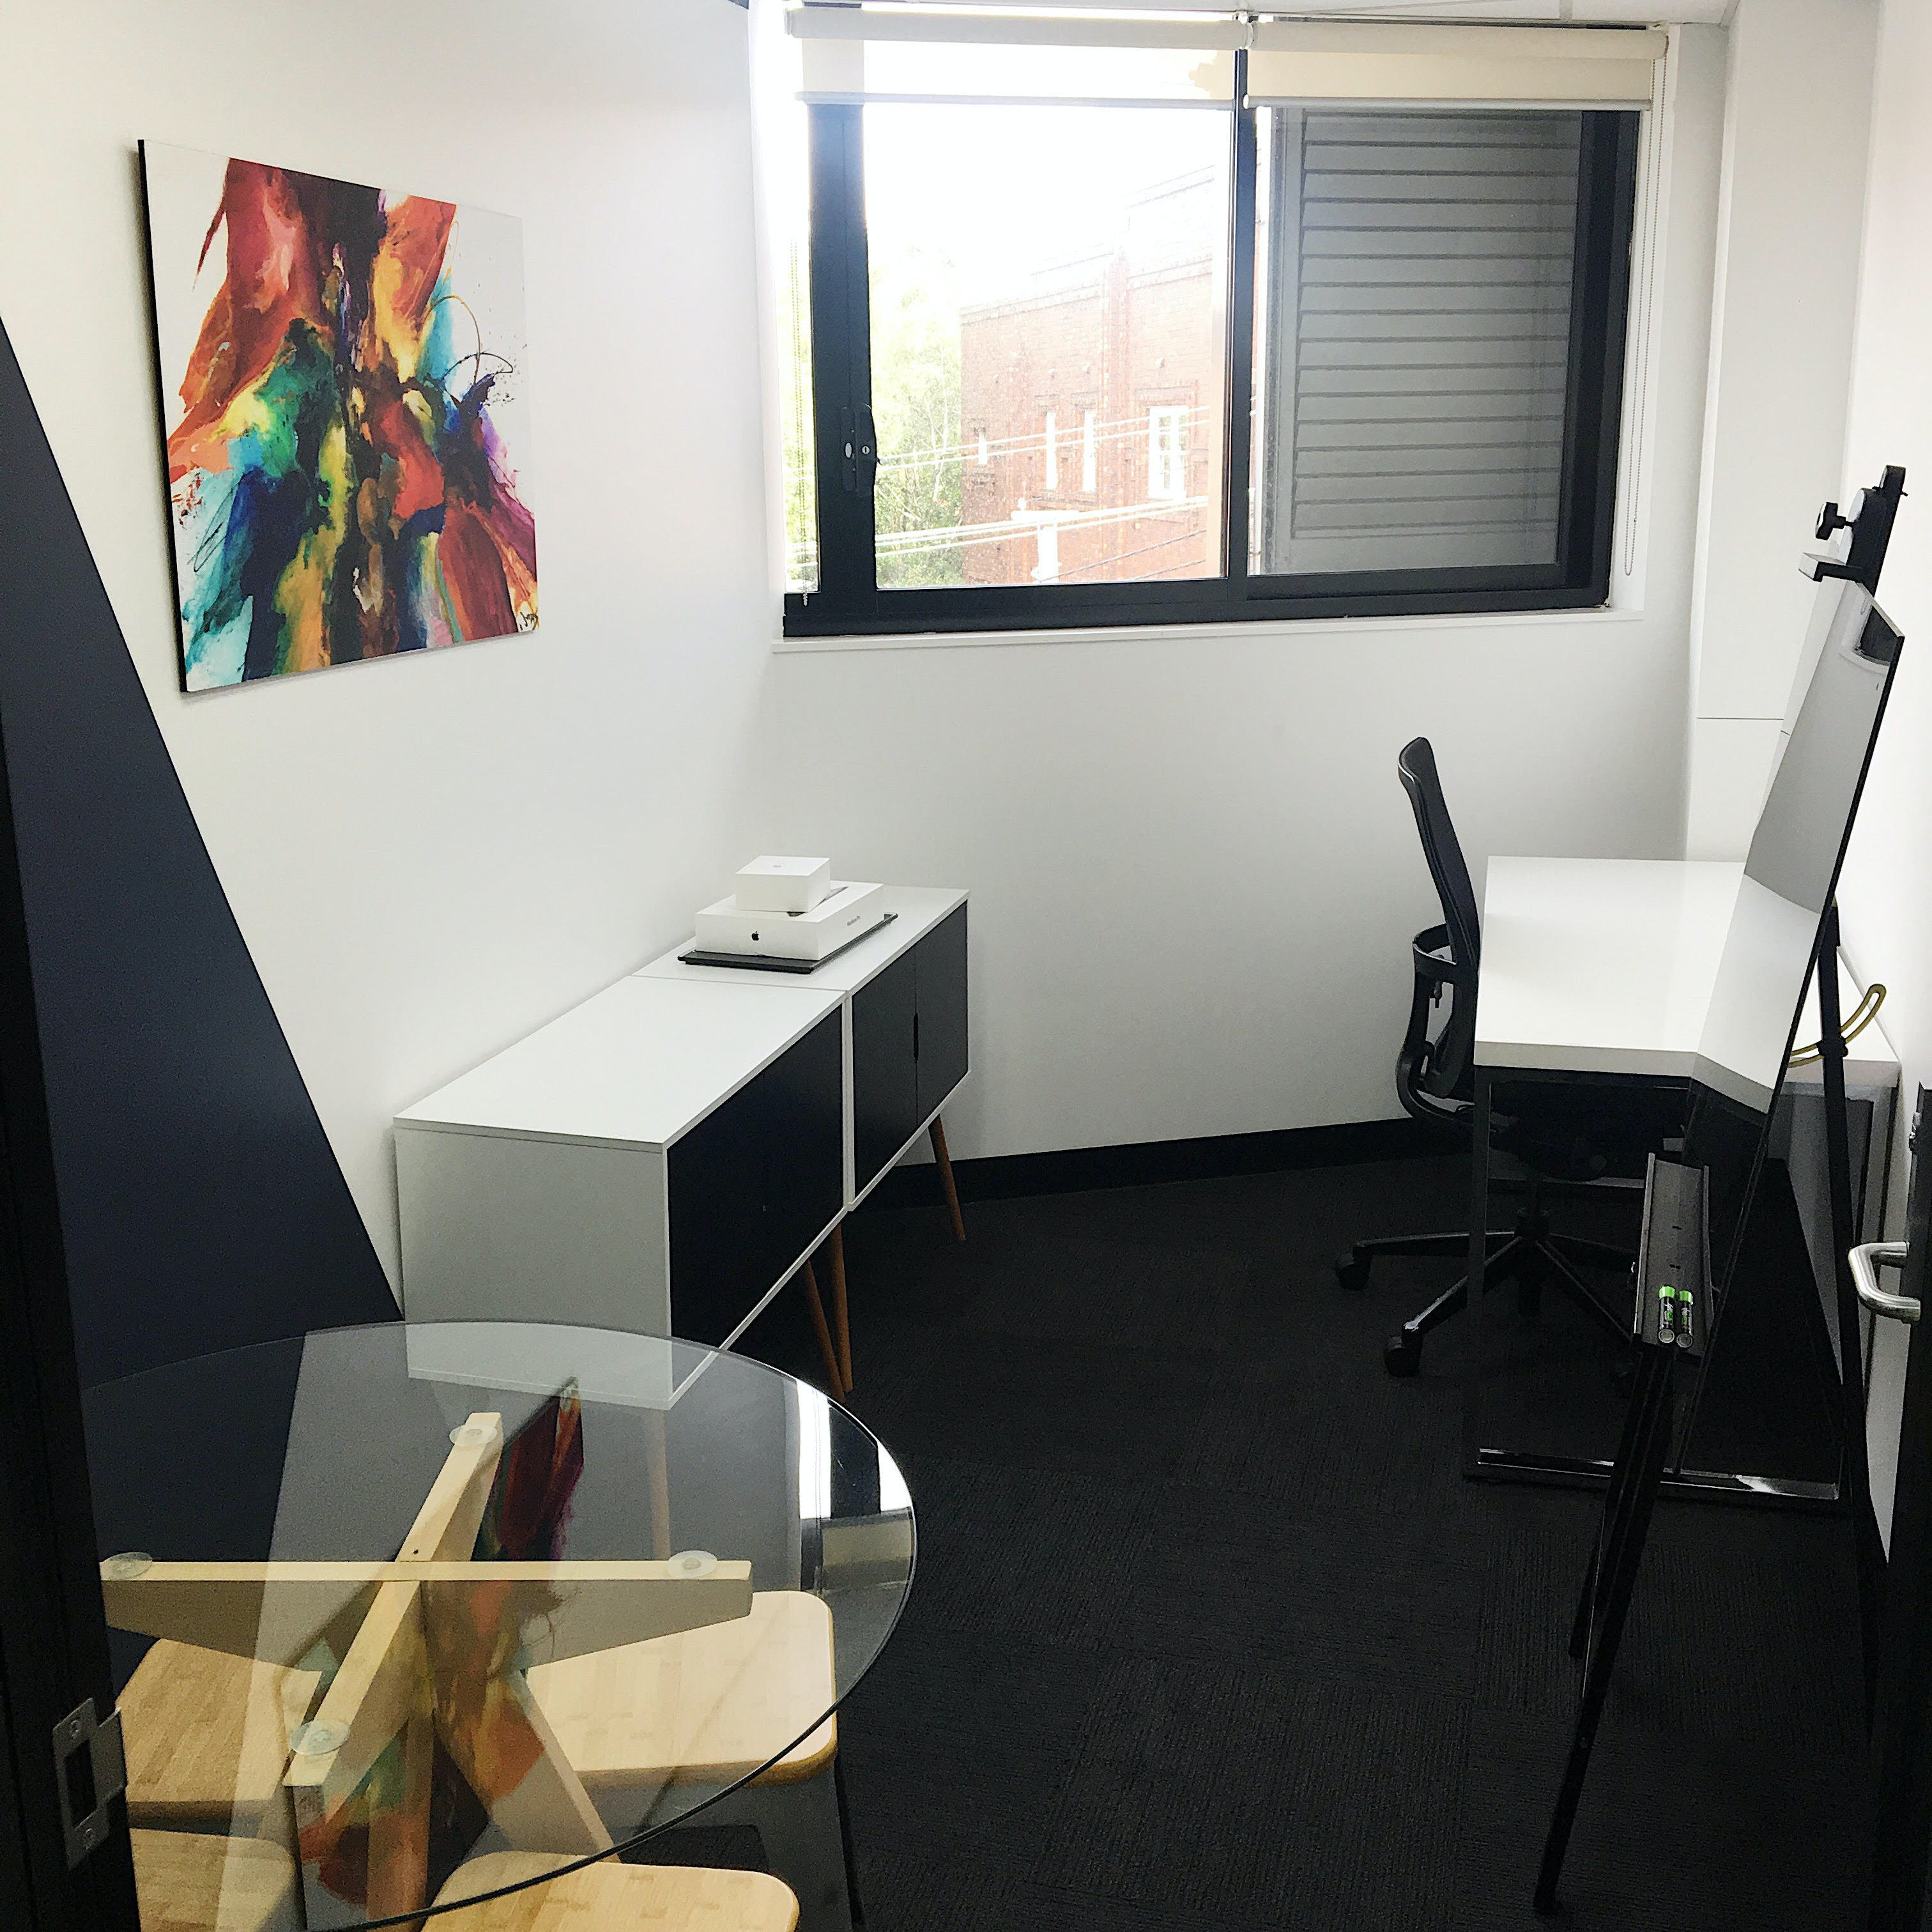 Suite 221, private office at Anytime Offices, image 2